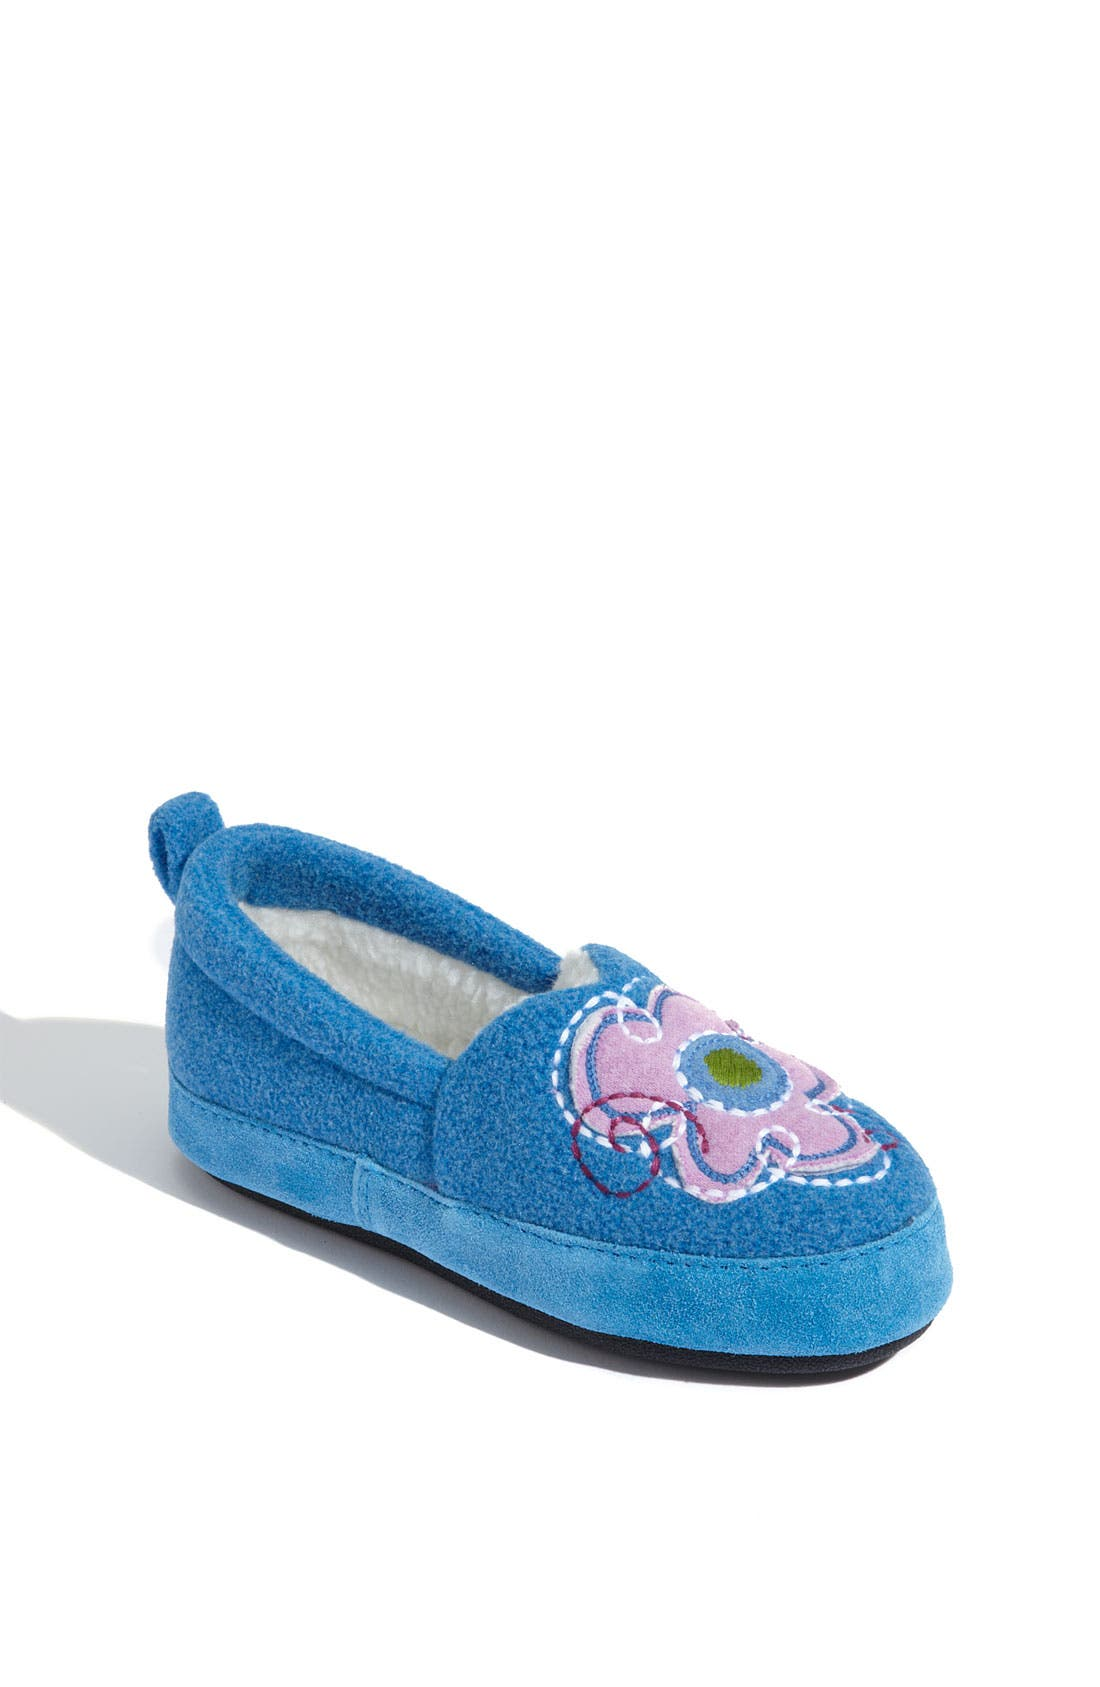 Alternate Image 1 Selected - Acorn 'Flower Power Moc' Slipper (Toddler, Little Kid & Big Kid)